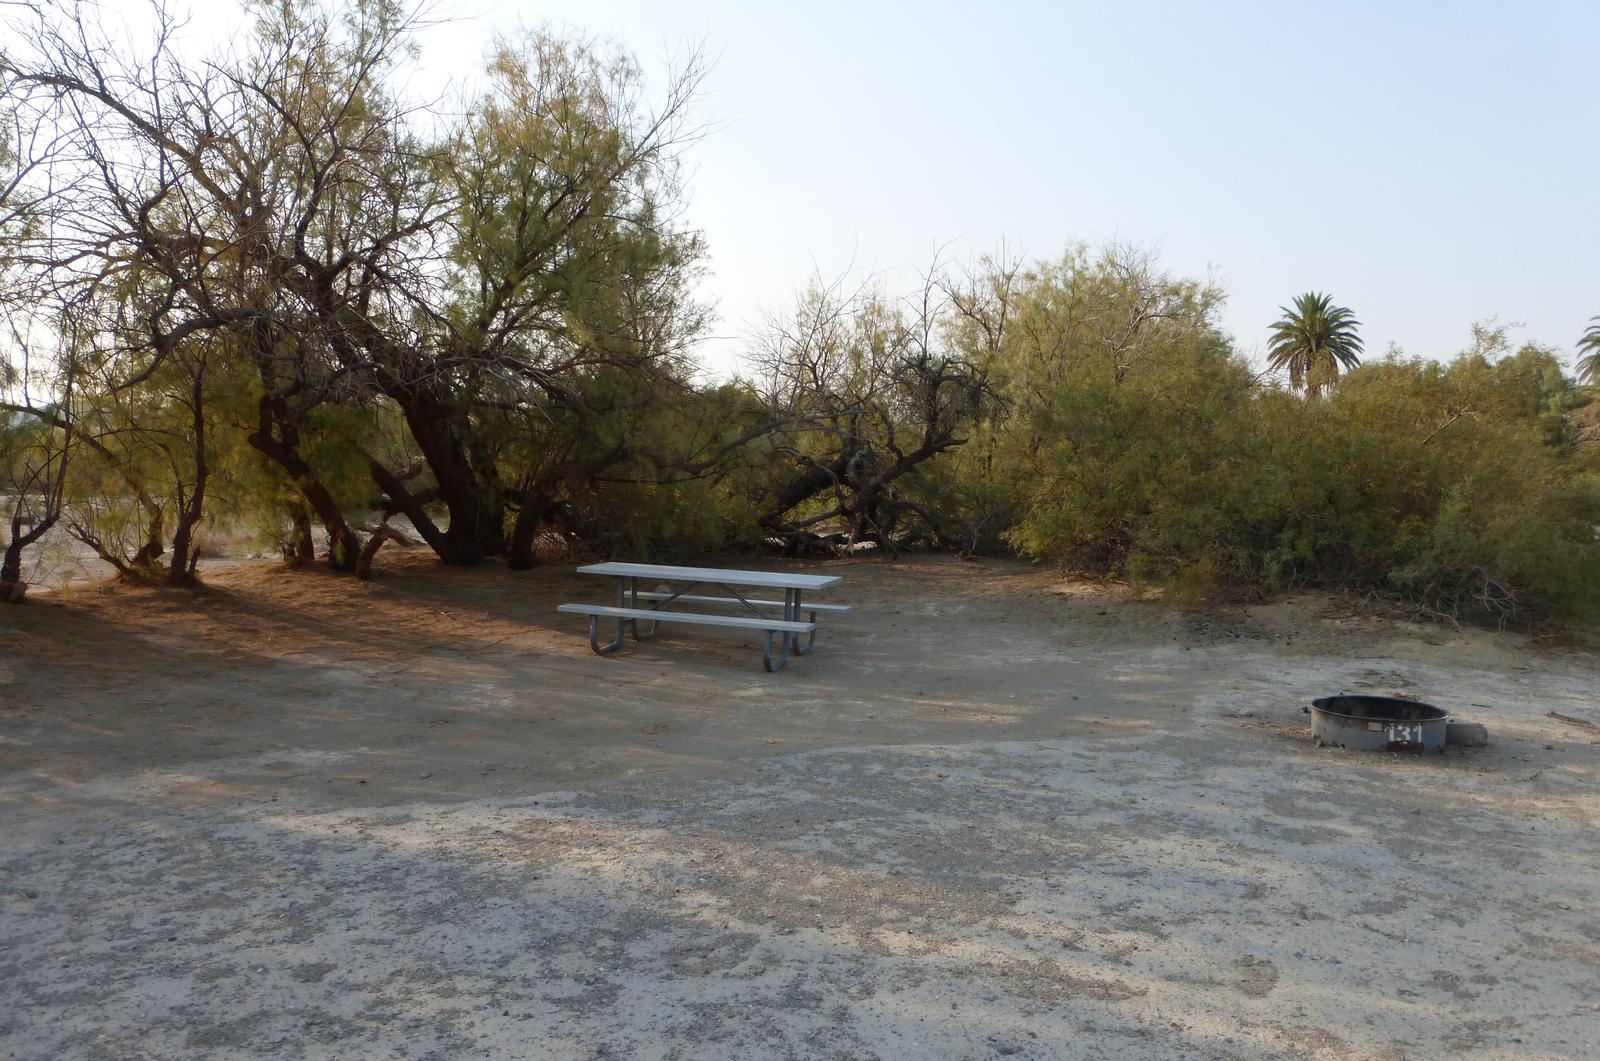 Tent only walk in site #131.  No campervans, RV's, or pop up tents.  One firepit with grate and one picnic table.  No utilities.